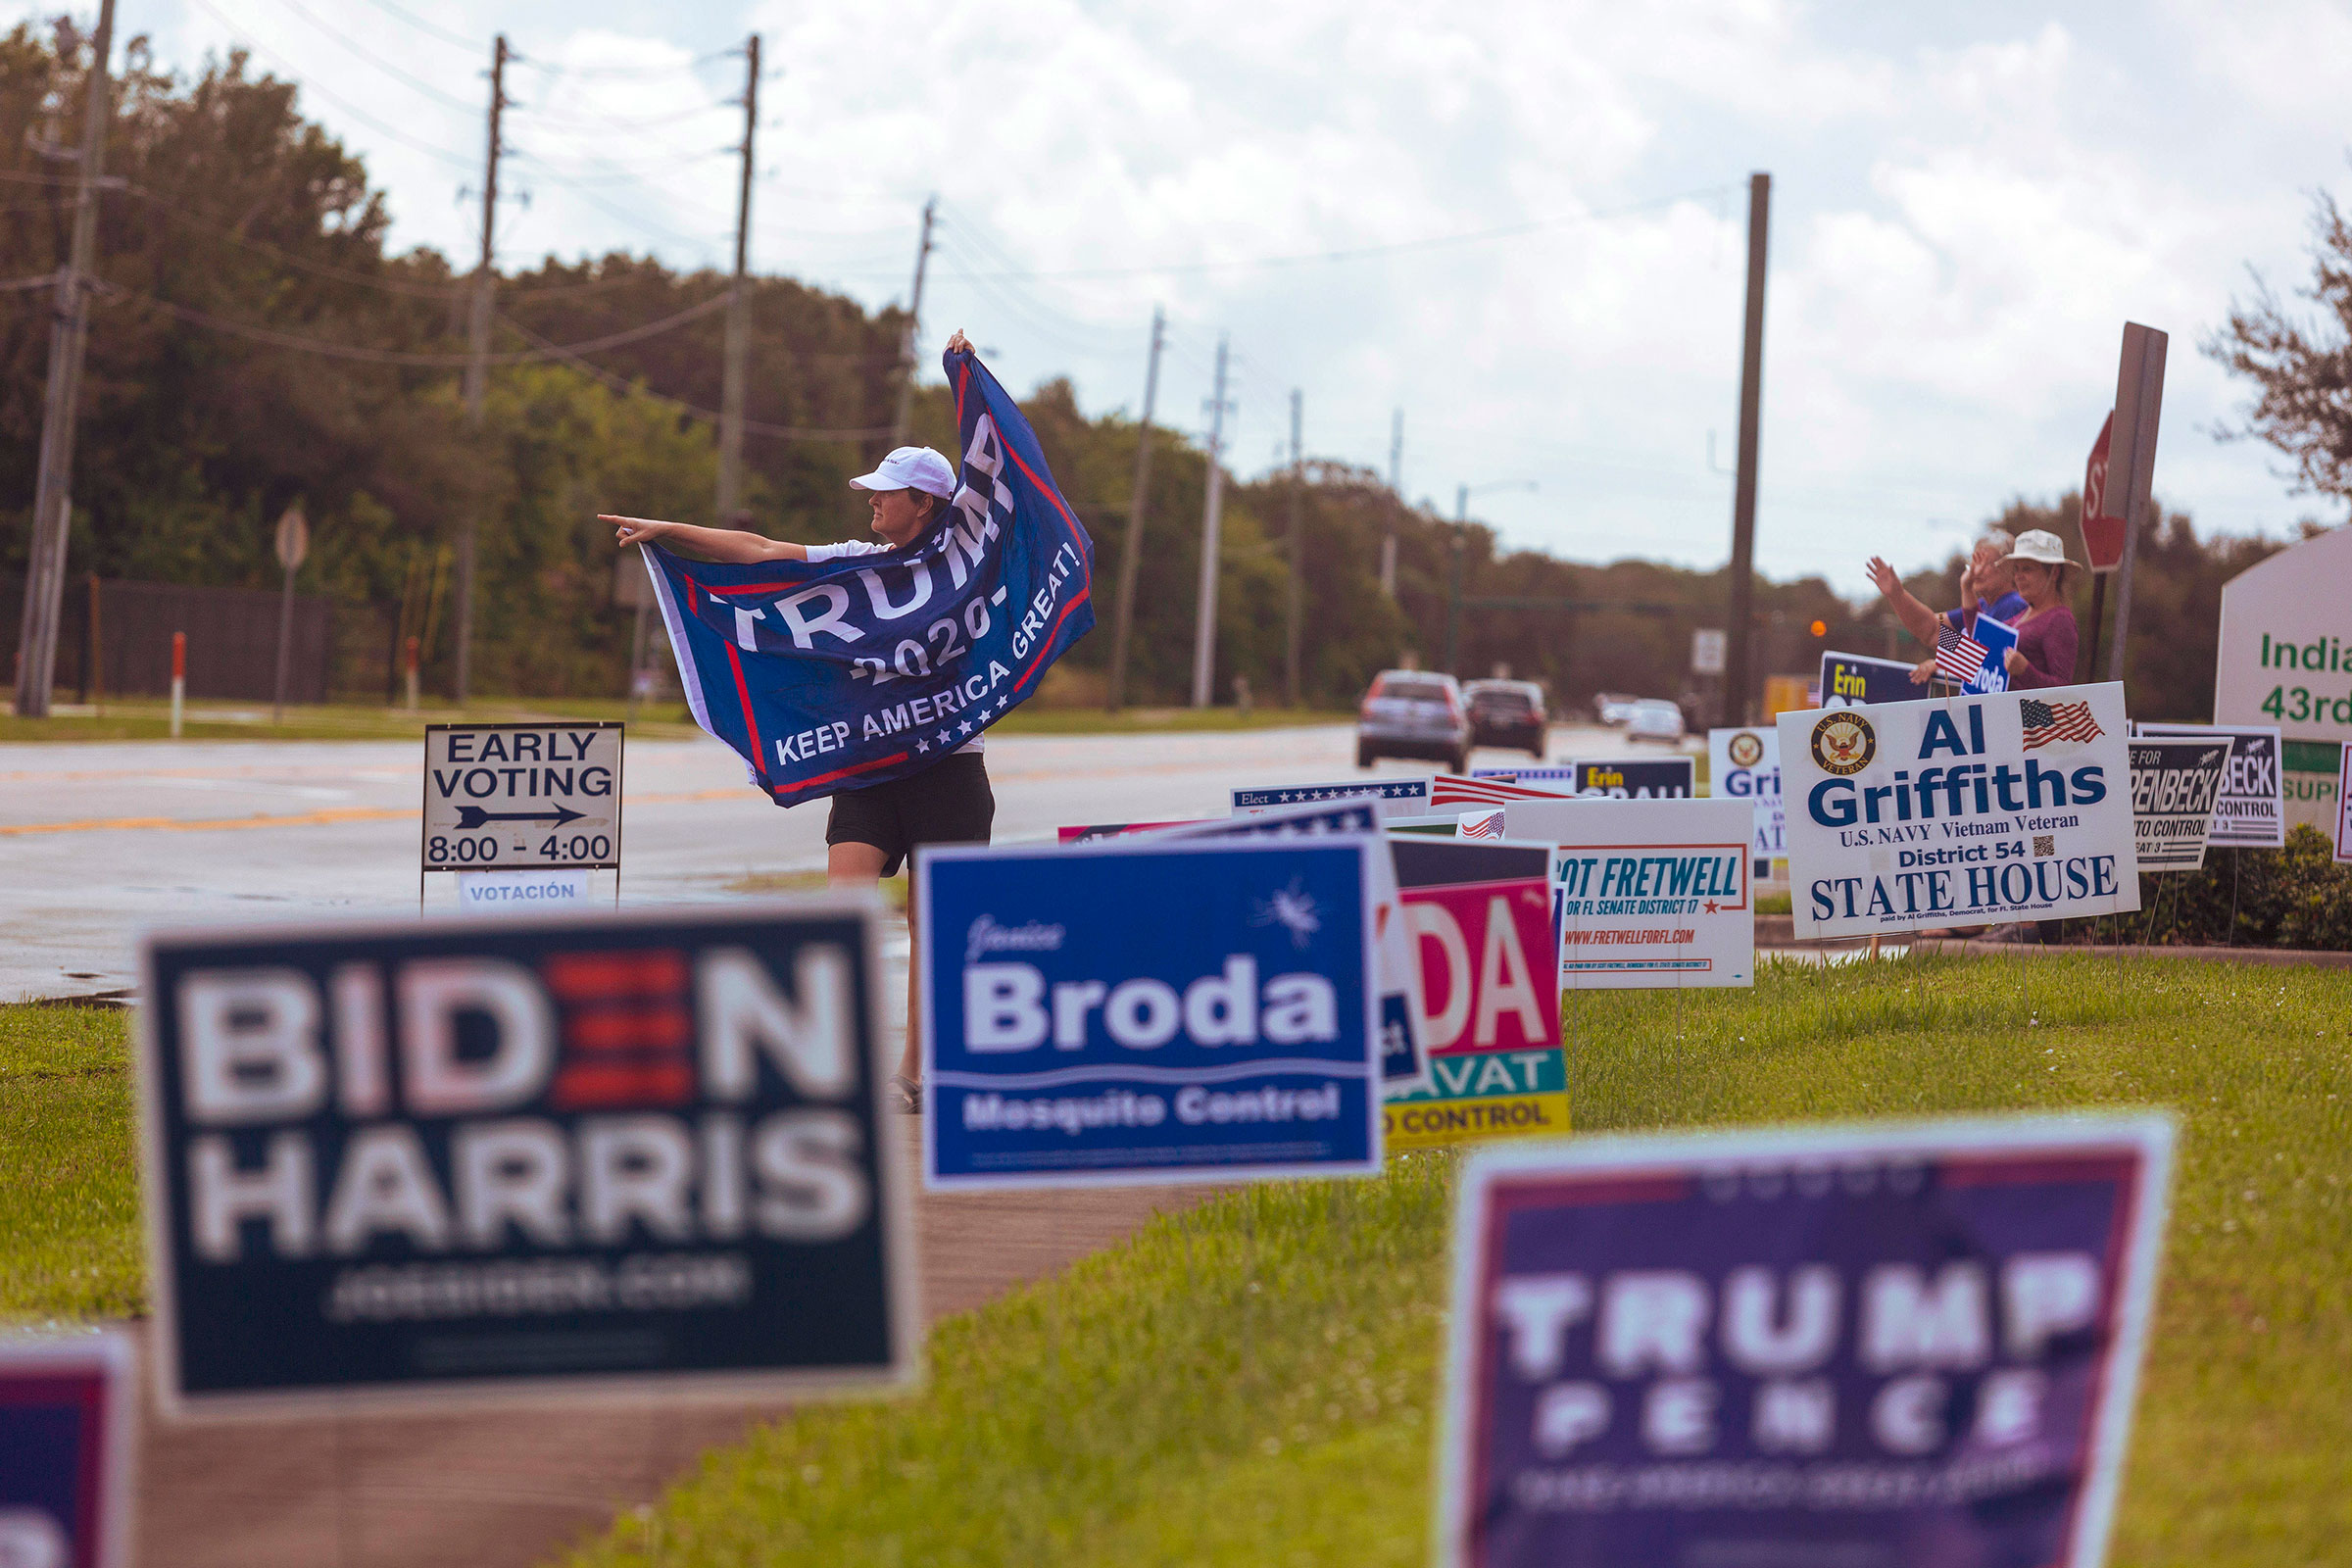 A person waves a Trump flag near a polling place in Vero Beach, Fla.,on Oct. 23, 2020.